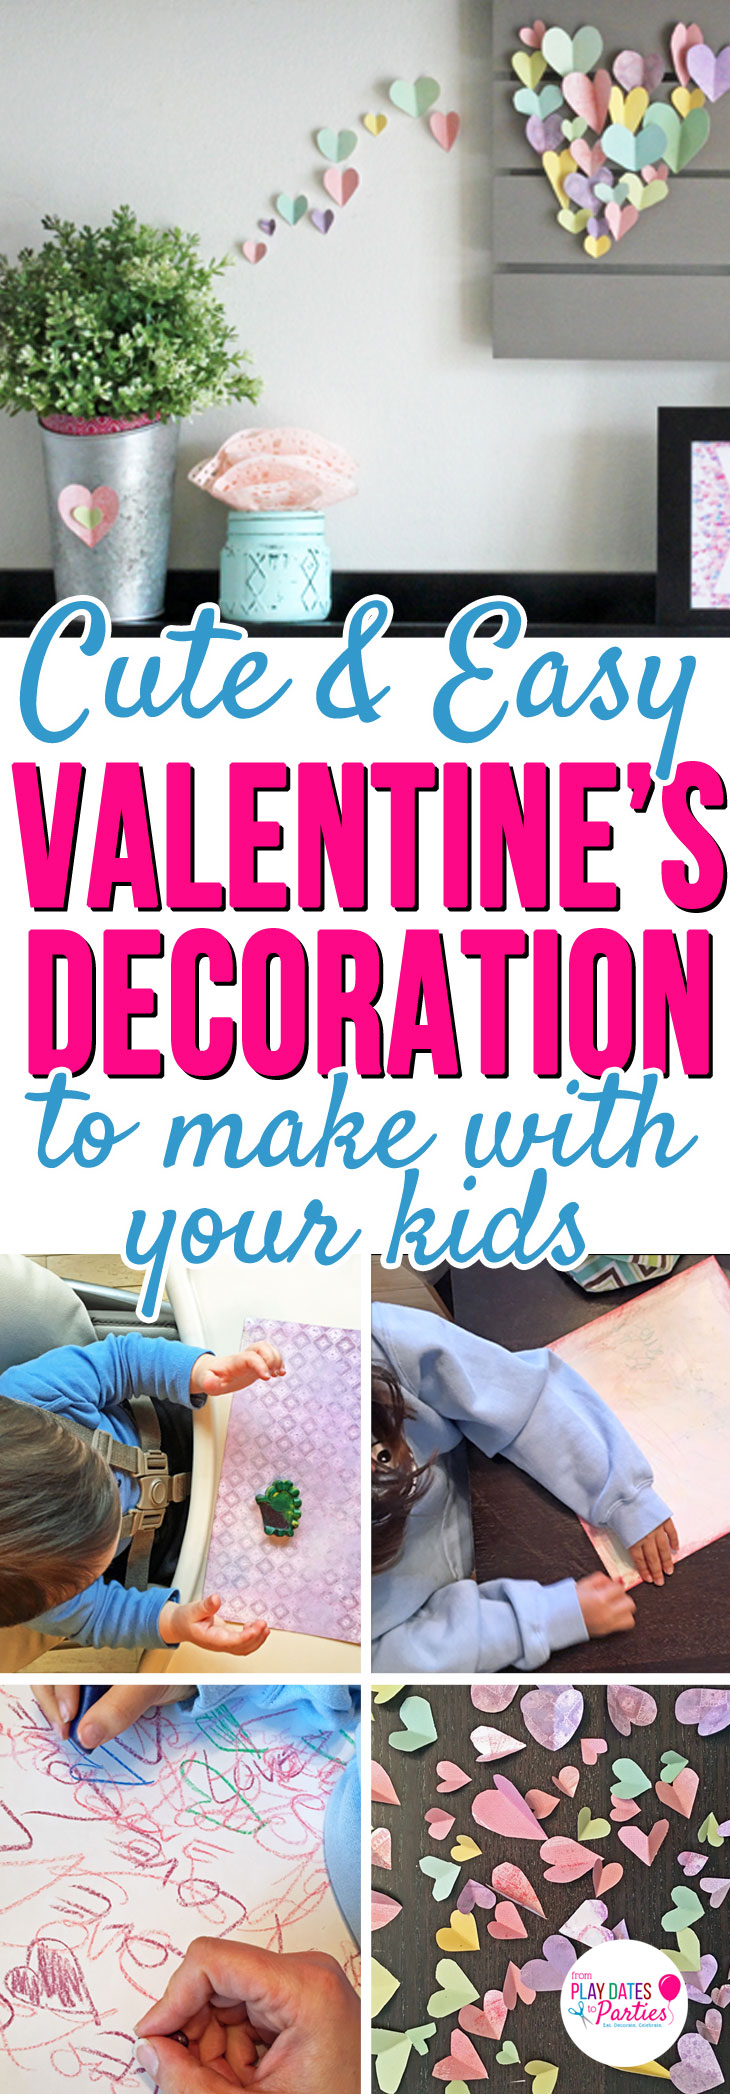 Want to decorate for Valentine's Day, but too busy with the kids? Head over to playdatesparties.com to see how to create these adorable Valentine's Day home decorations WITH your kids! #valentinesday #valentinesdecor #kids #kidscrafts